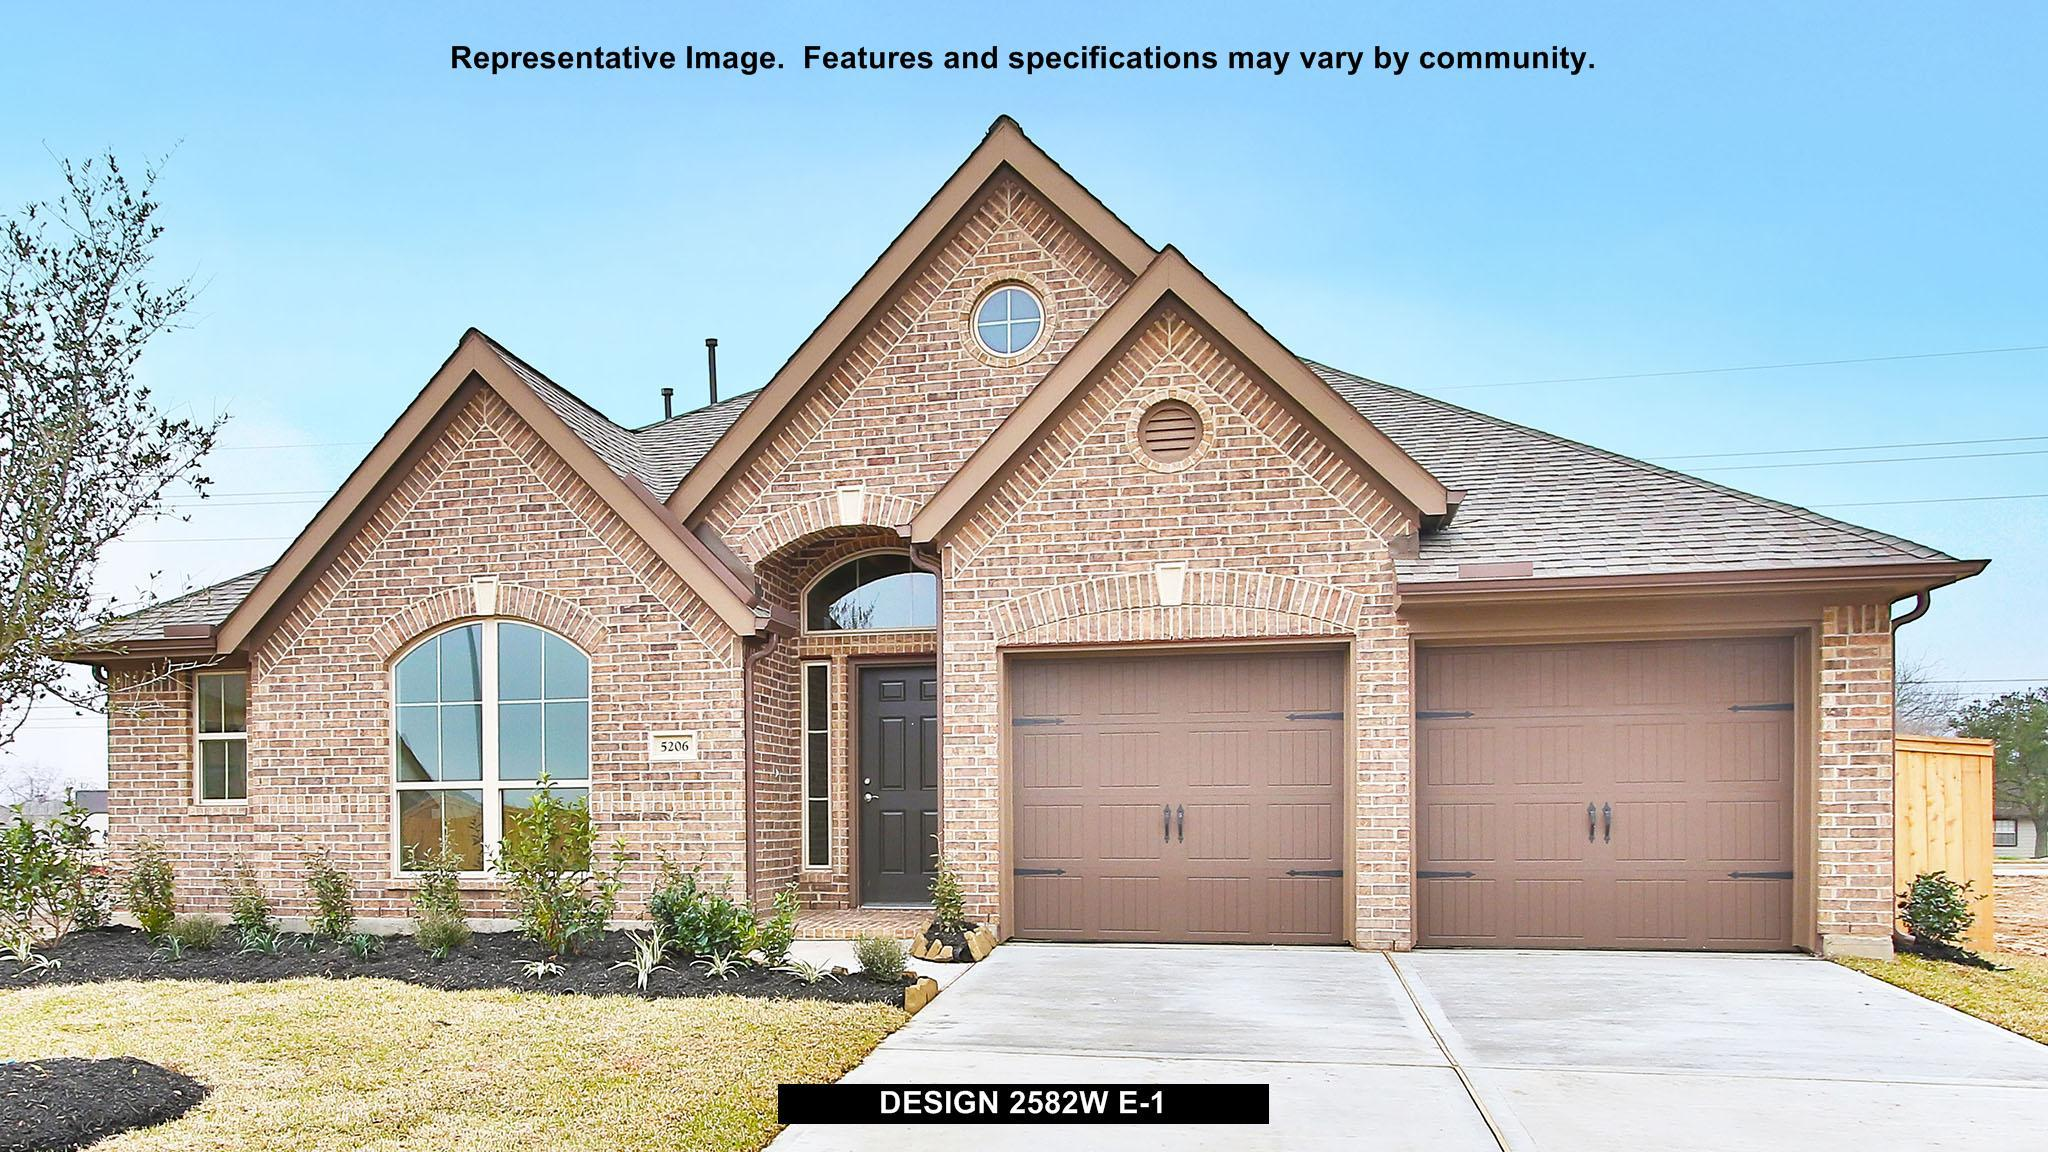 2582W - Cinco Ranch: Cinco Ranch 55': Katy, TX - Perry Homes